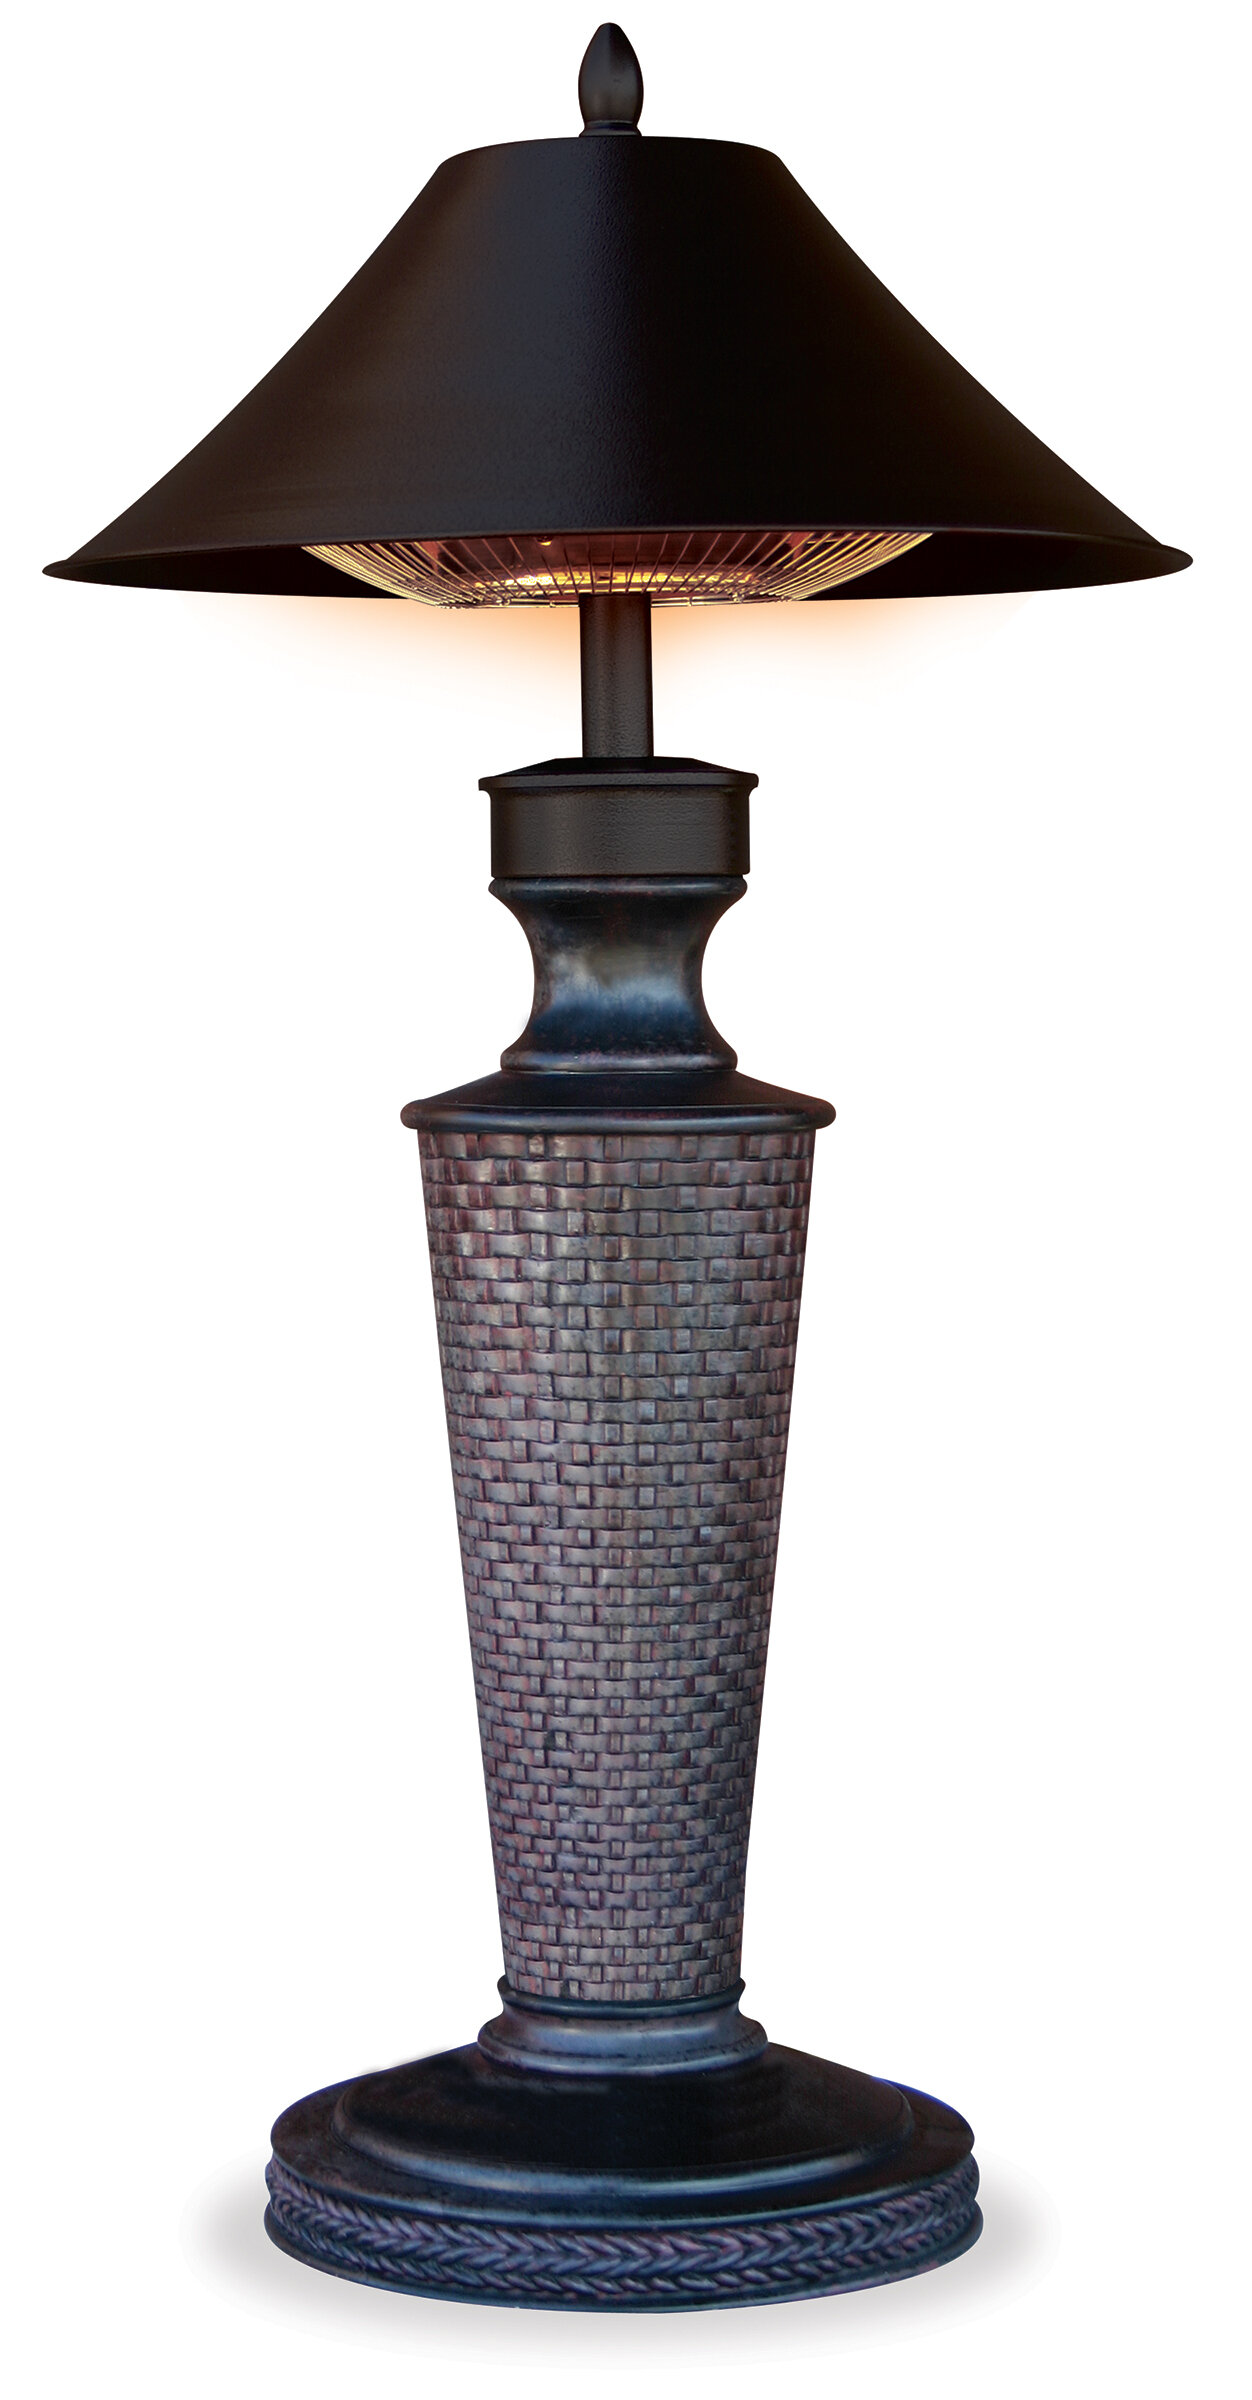 Uniflame Vacation Day 1200 Watt Electric Tabletop Patio Heater